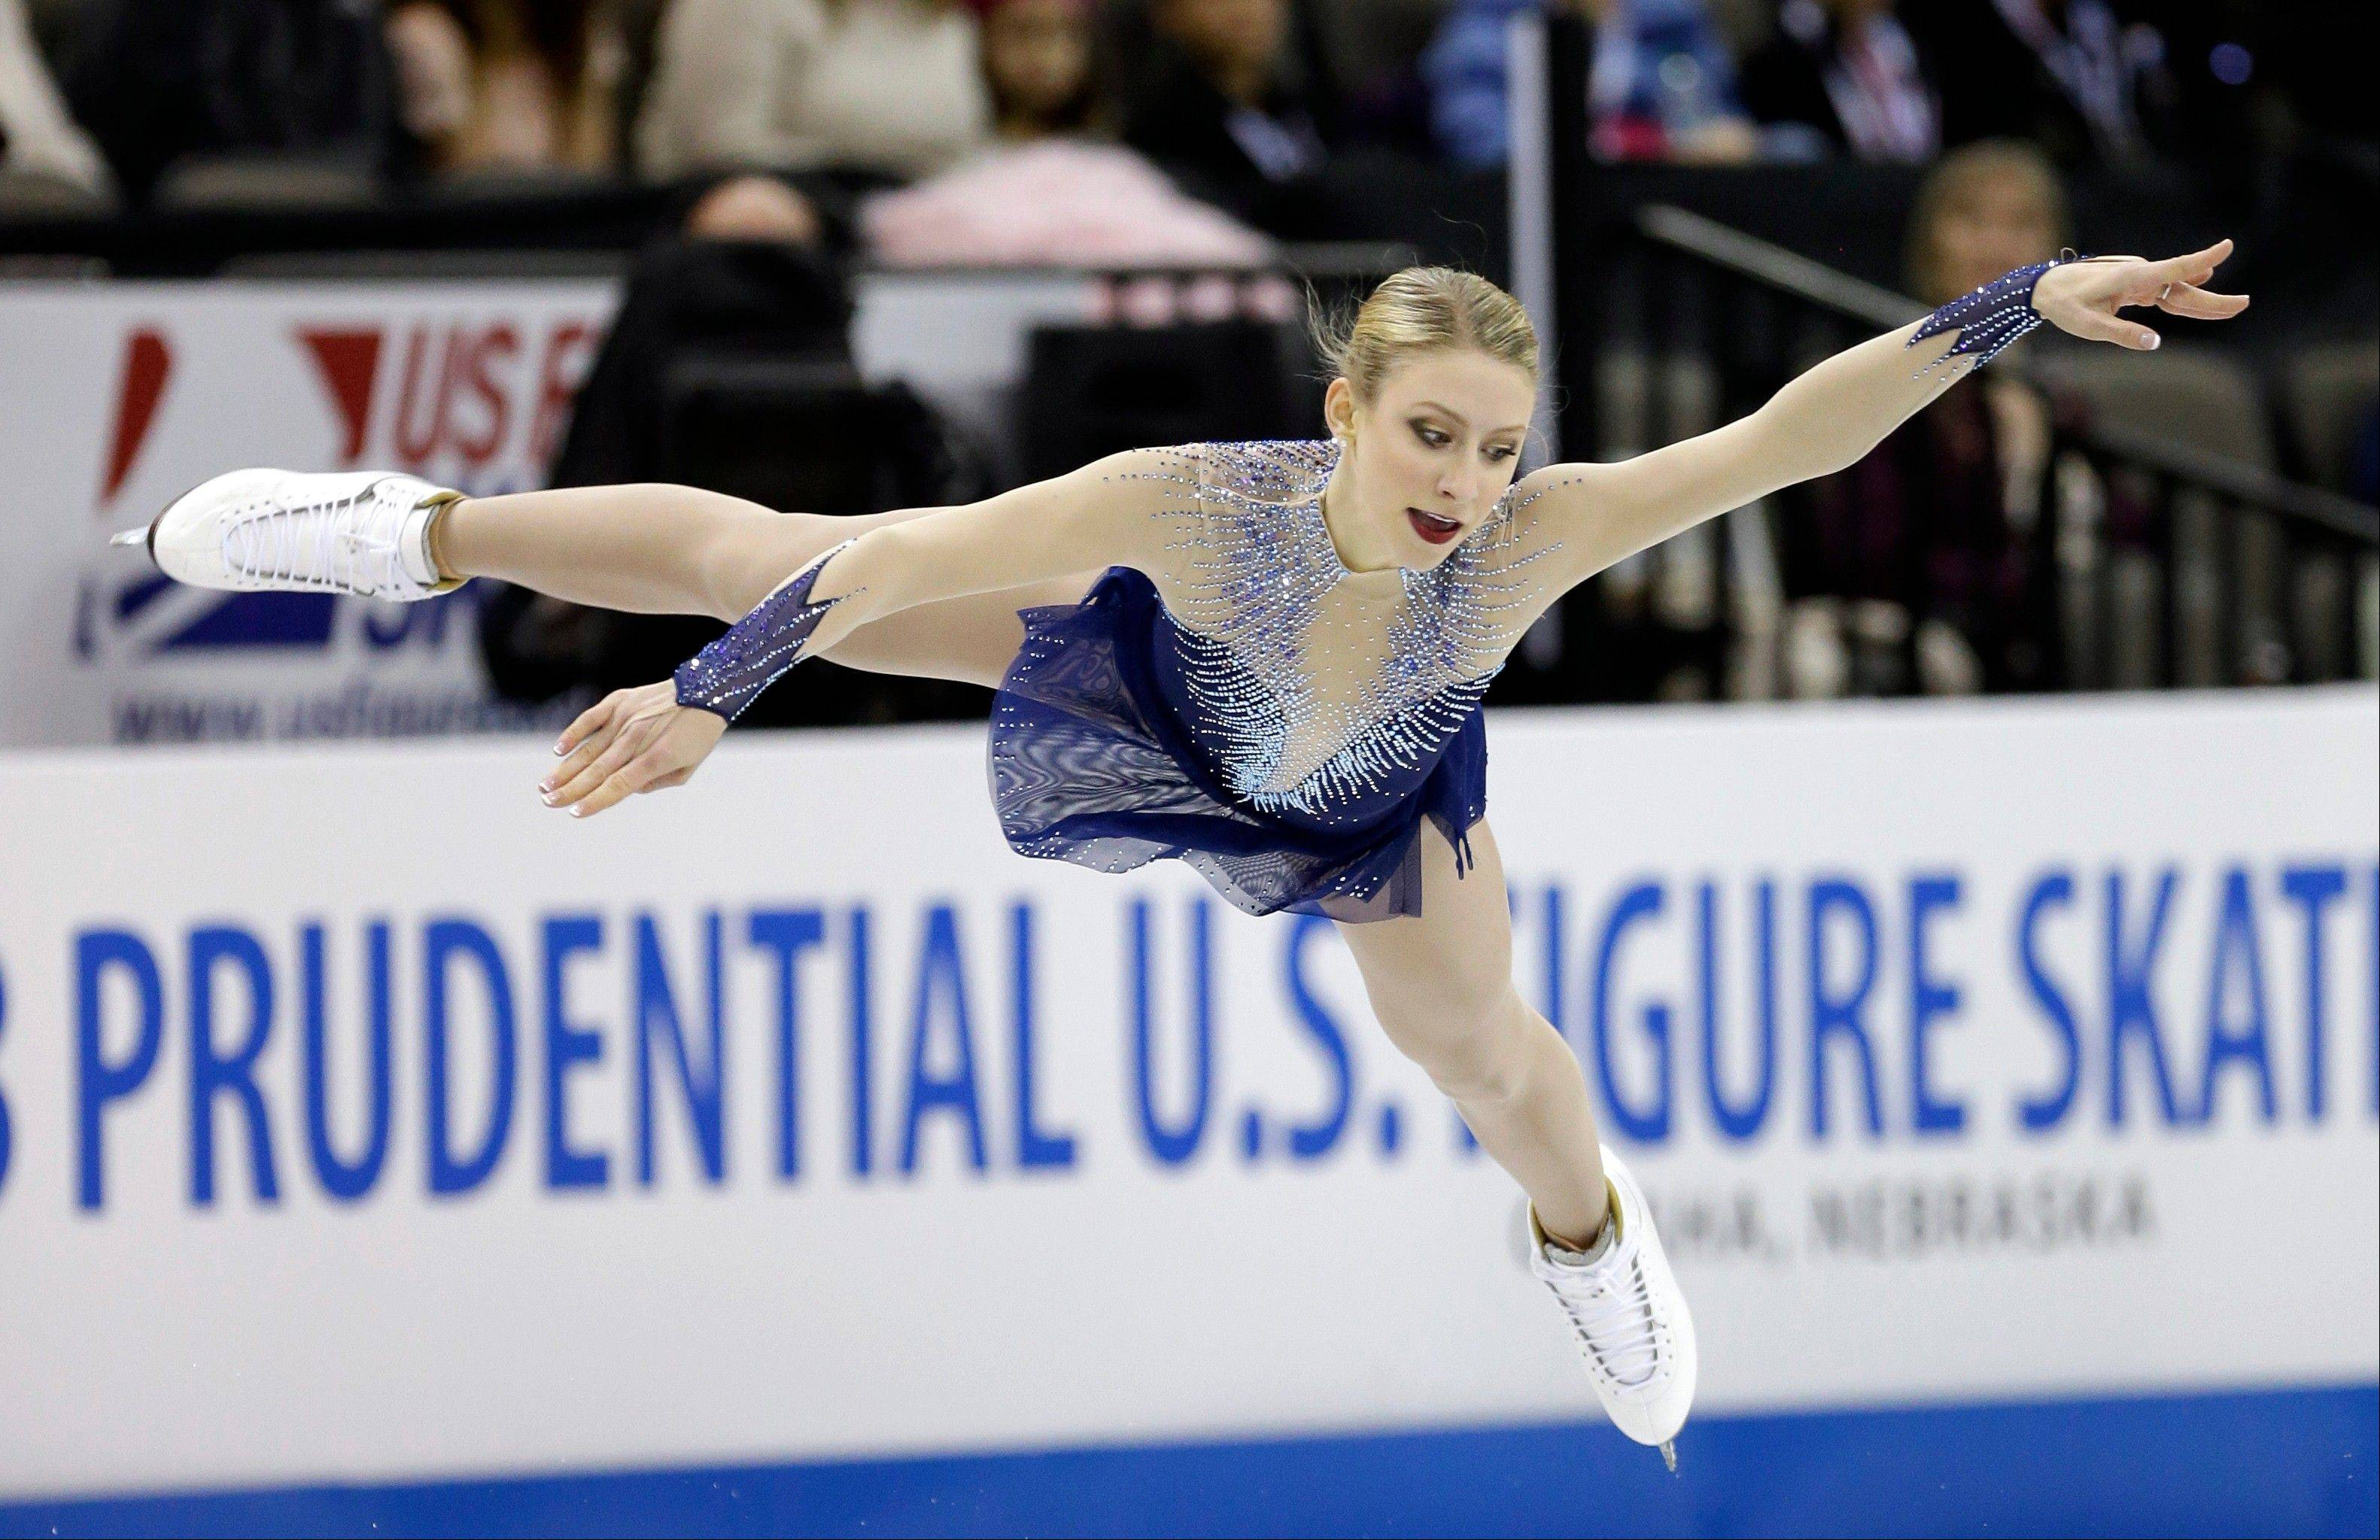 Agnes Zawadzki of Des Plaines competes during the senior ladies free skate program at the U.S. figure skating championships Saturday in Omaha, Neb. The Des Plaines native finished third after falling in the final routine.